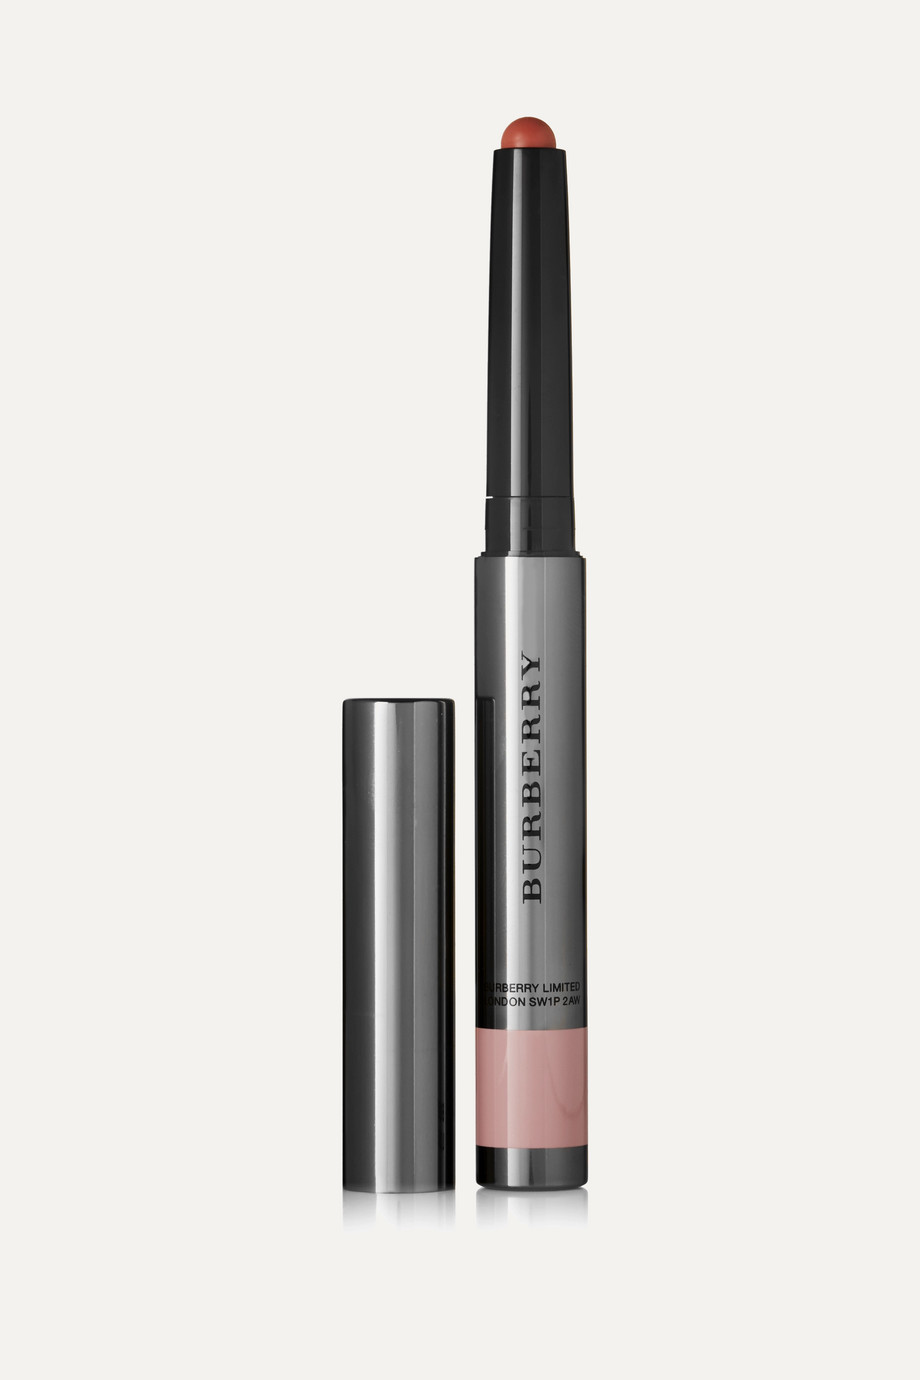 Burberry Beauty Lip Color Contour - Fair No 01